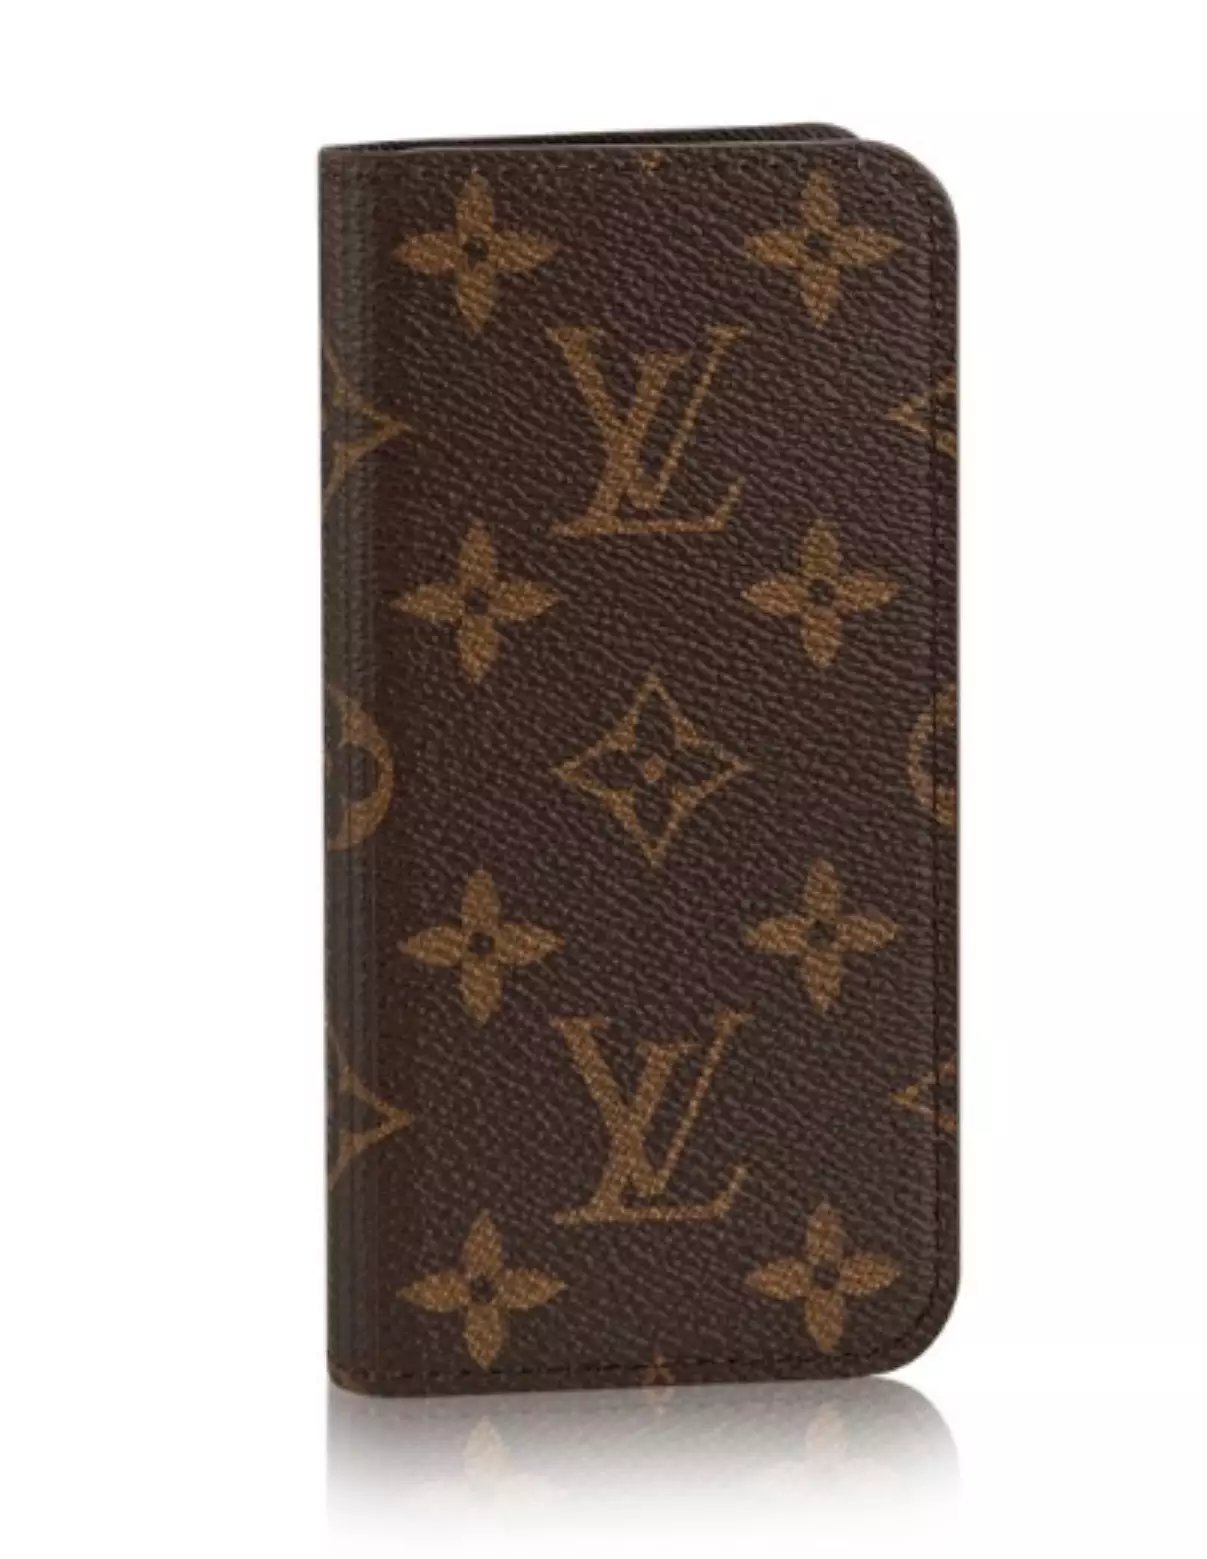 iphone hülle holz filzhülle iphone Louis Vuitton iphone7 Plus hülle billige iphone hüllen handyhüllen online gestalten iphone 7 Plus ledertasche iphone 7 Plus a7 hwarz iphone 7 Plus hülle kaufen iphone 7 Plus taubschutz